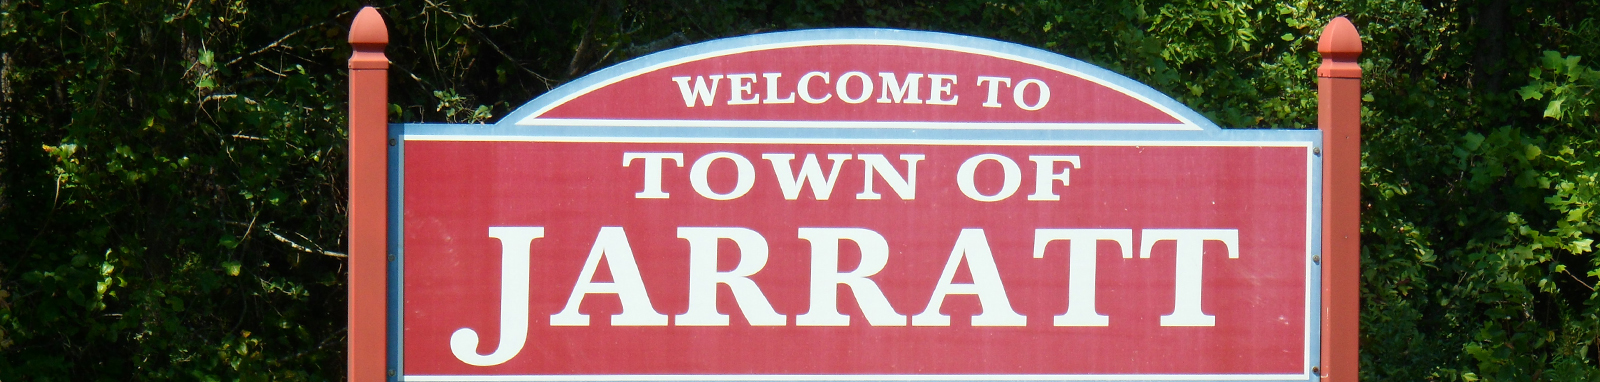 Town of Jarratt